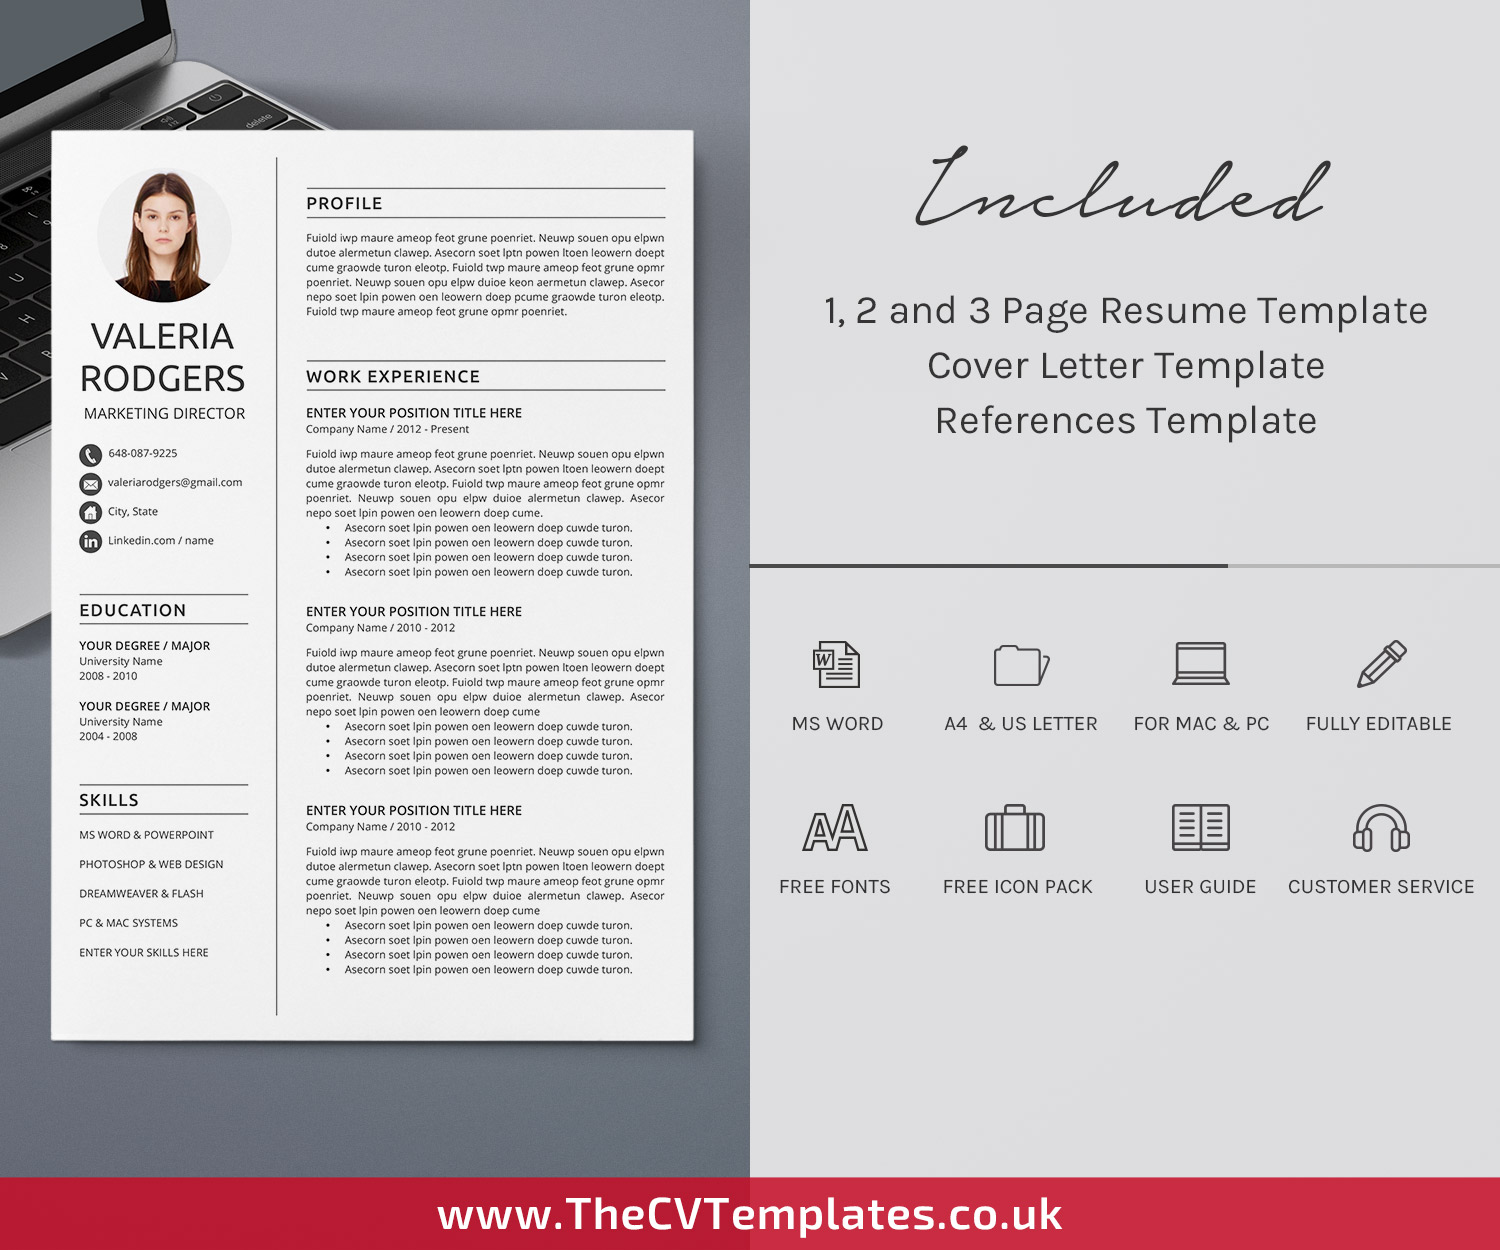 Professional Cv Template For Microsoft Word Curriculum Vitae Modern Resume Format Creative Resume Design 1 2 3 Page Resume Editable Simple Resume For Job Seekers Instant Download Thecvtemplates Co Uk